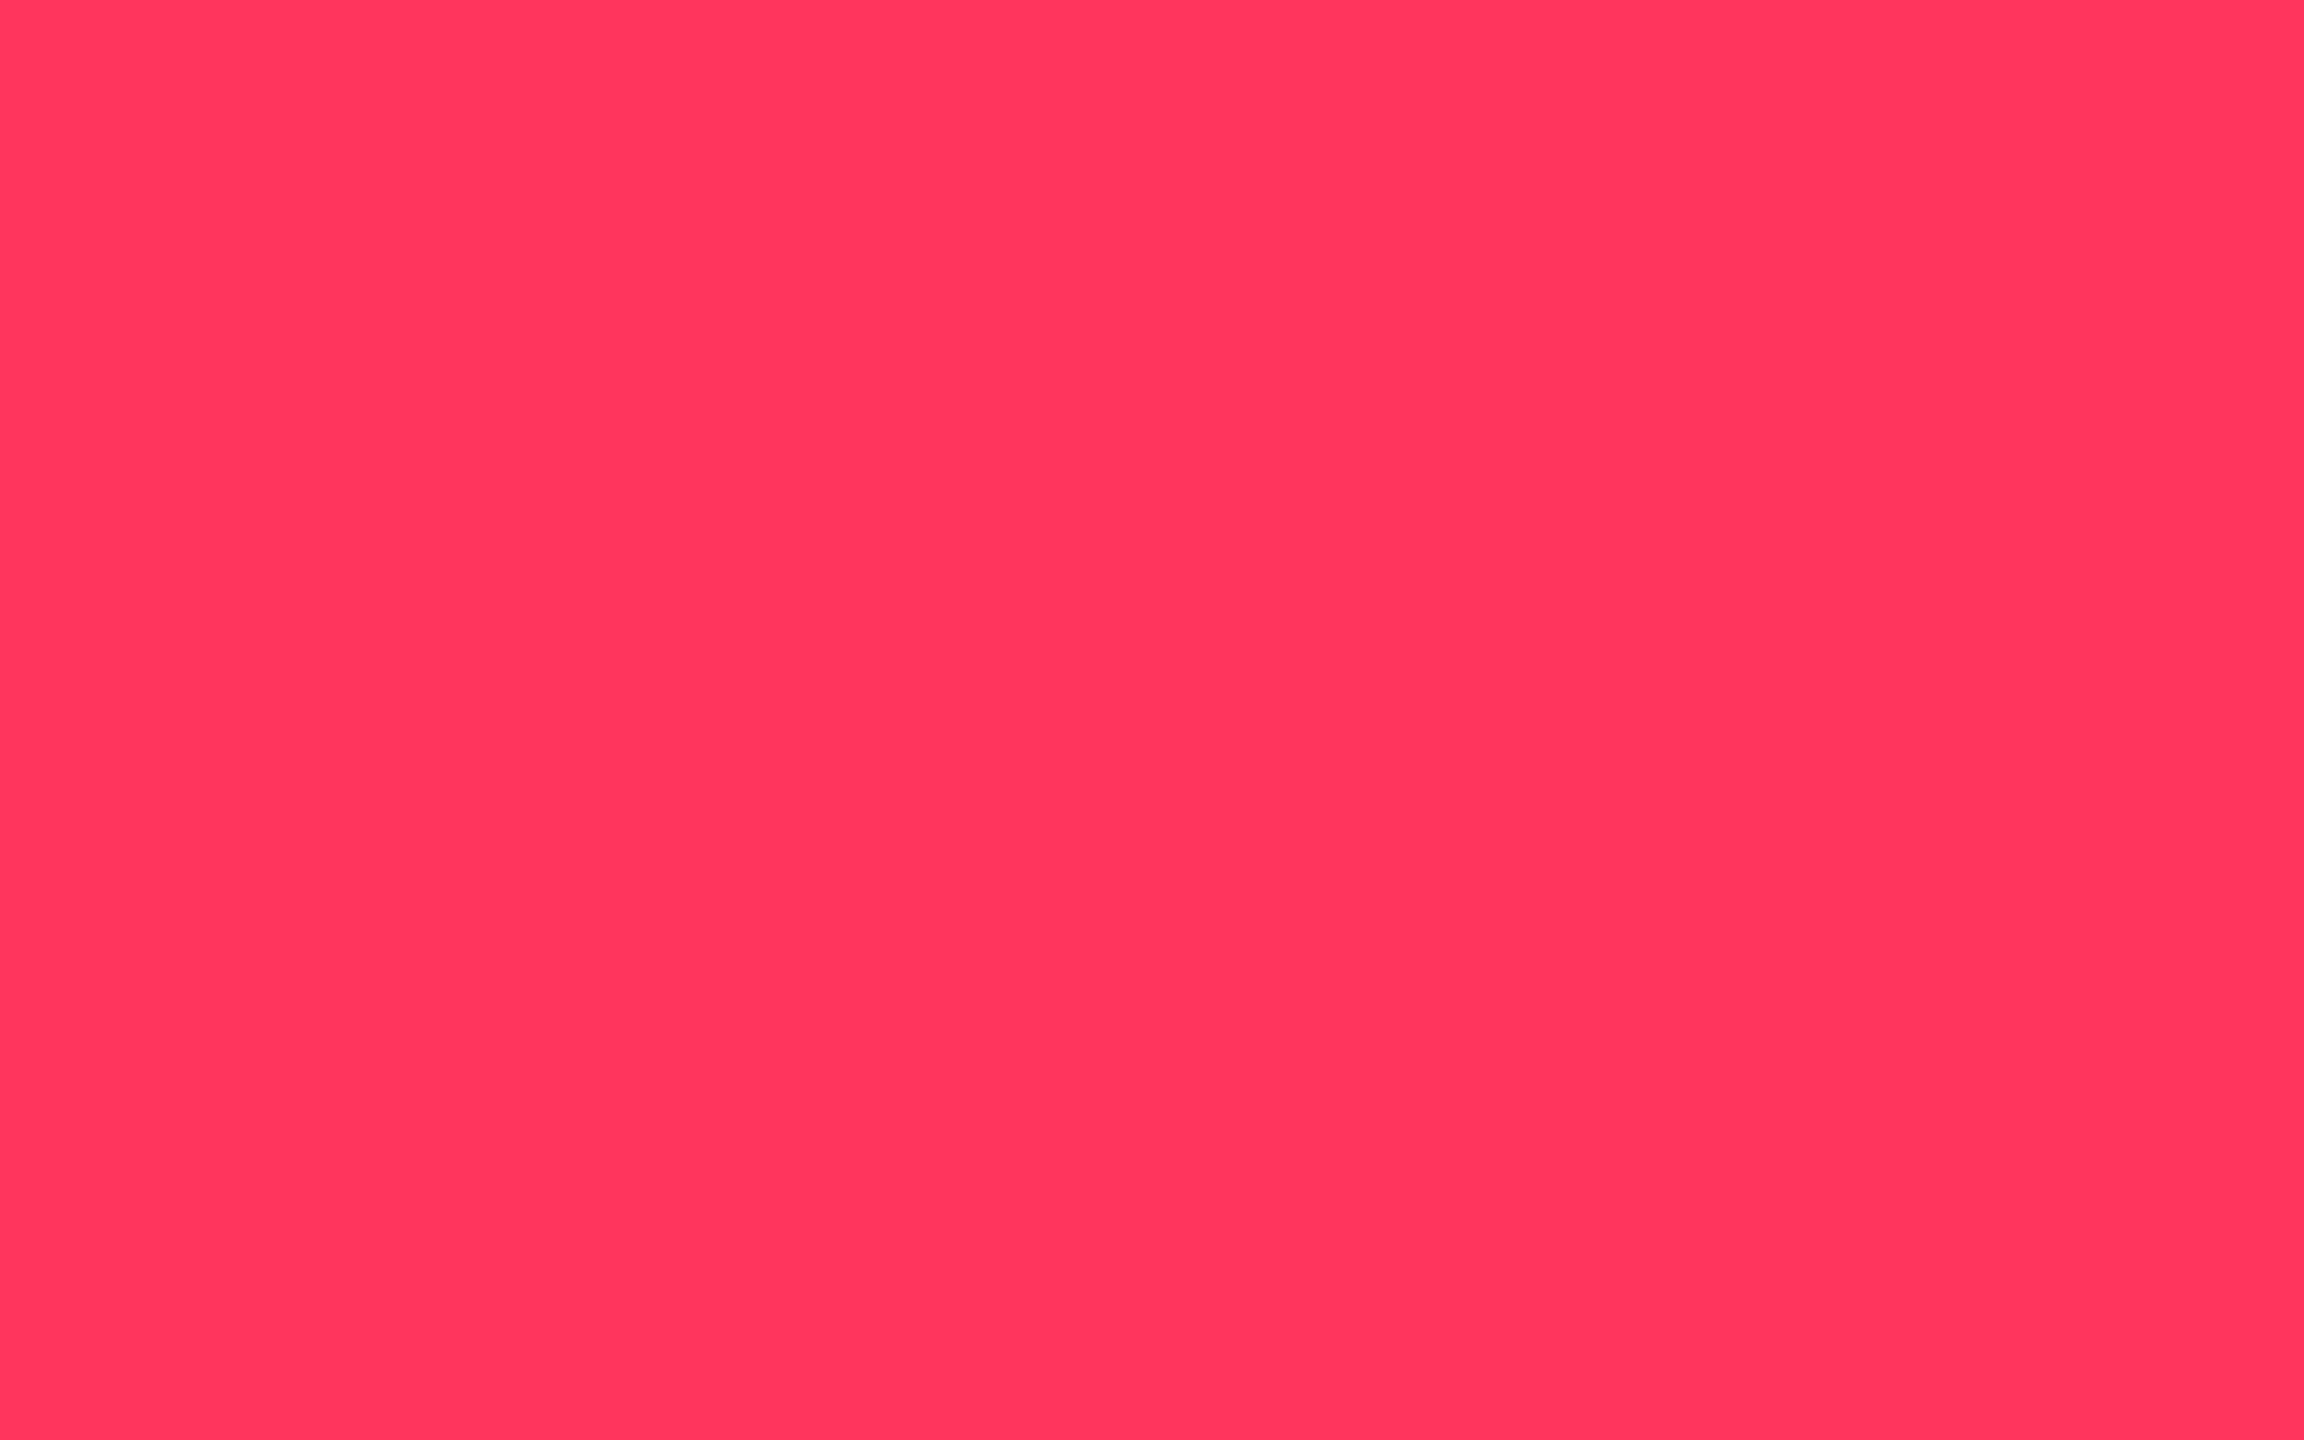 2304x1440 Radical Red Solid Color Background